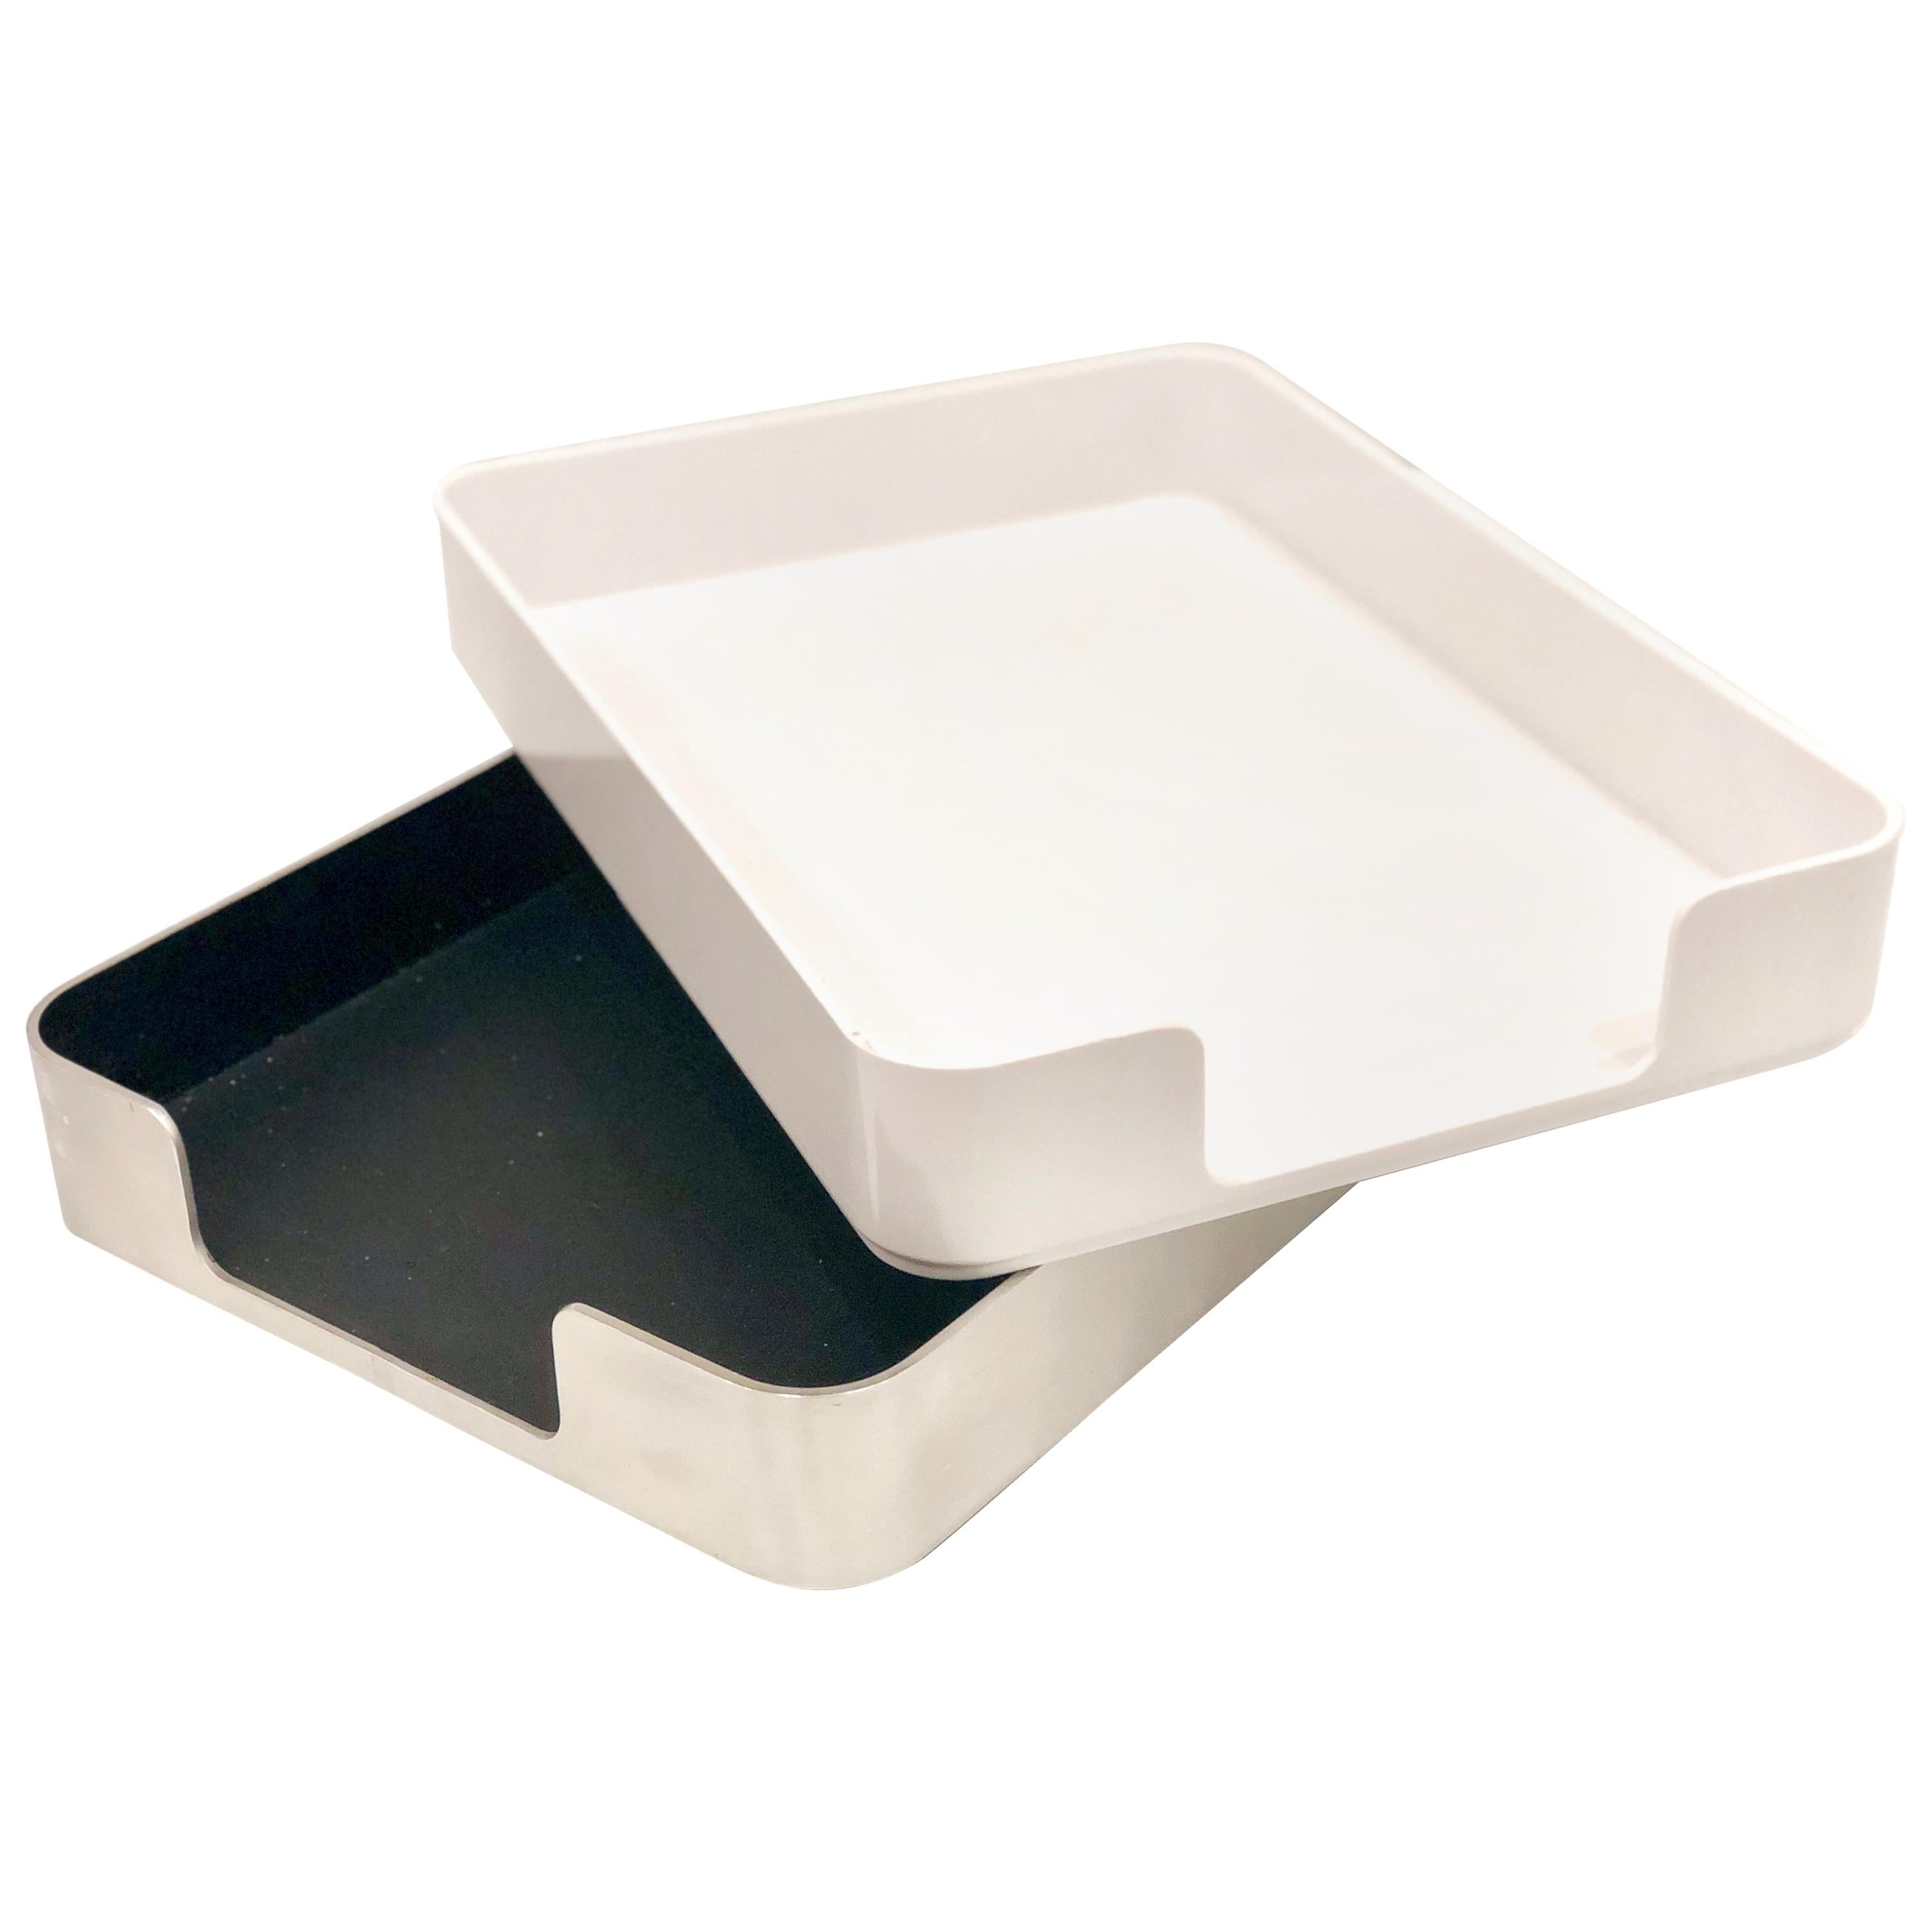 Radius One Double Letter Tray by William Sklaroff in Chrome & White Plastic